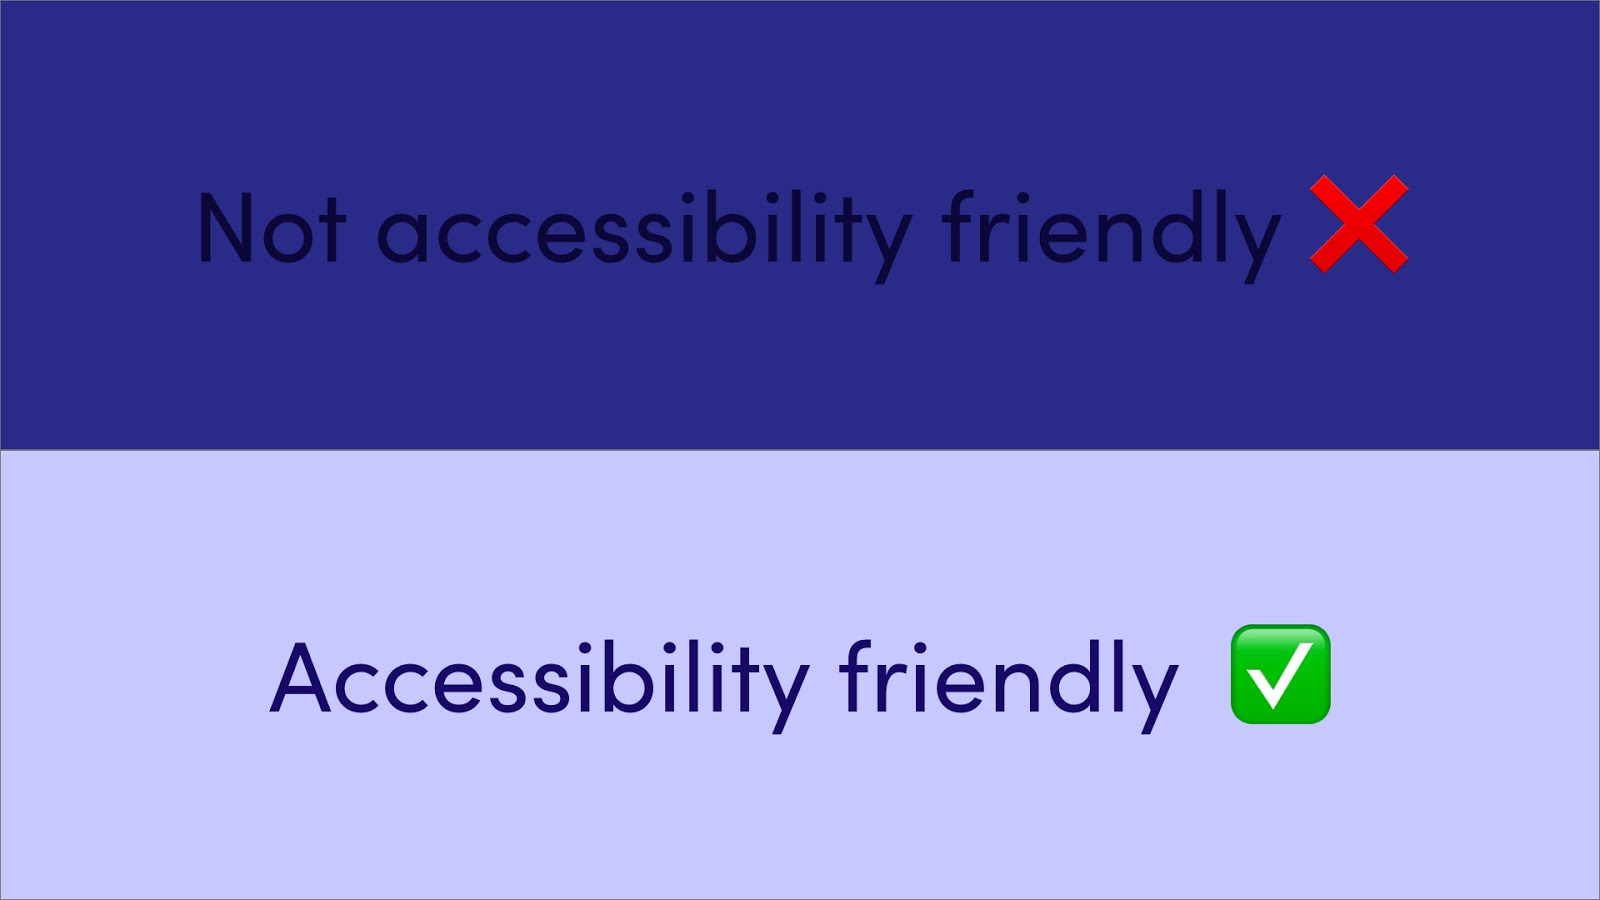 A visual example of accessibility friendly vs not accessibility friend color combinations